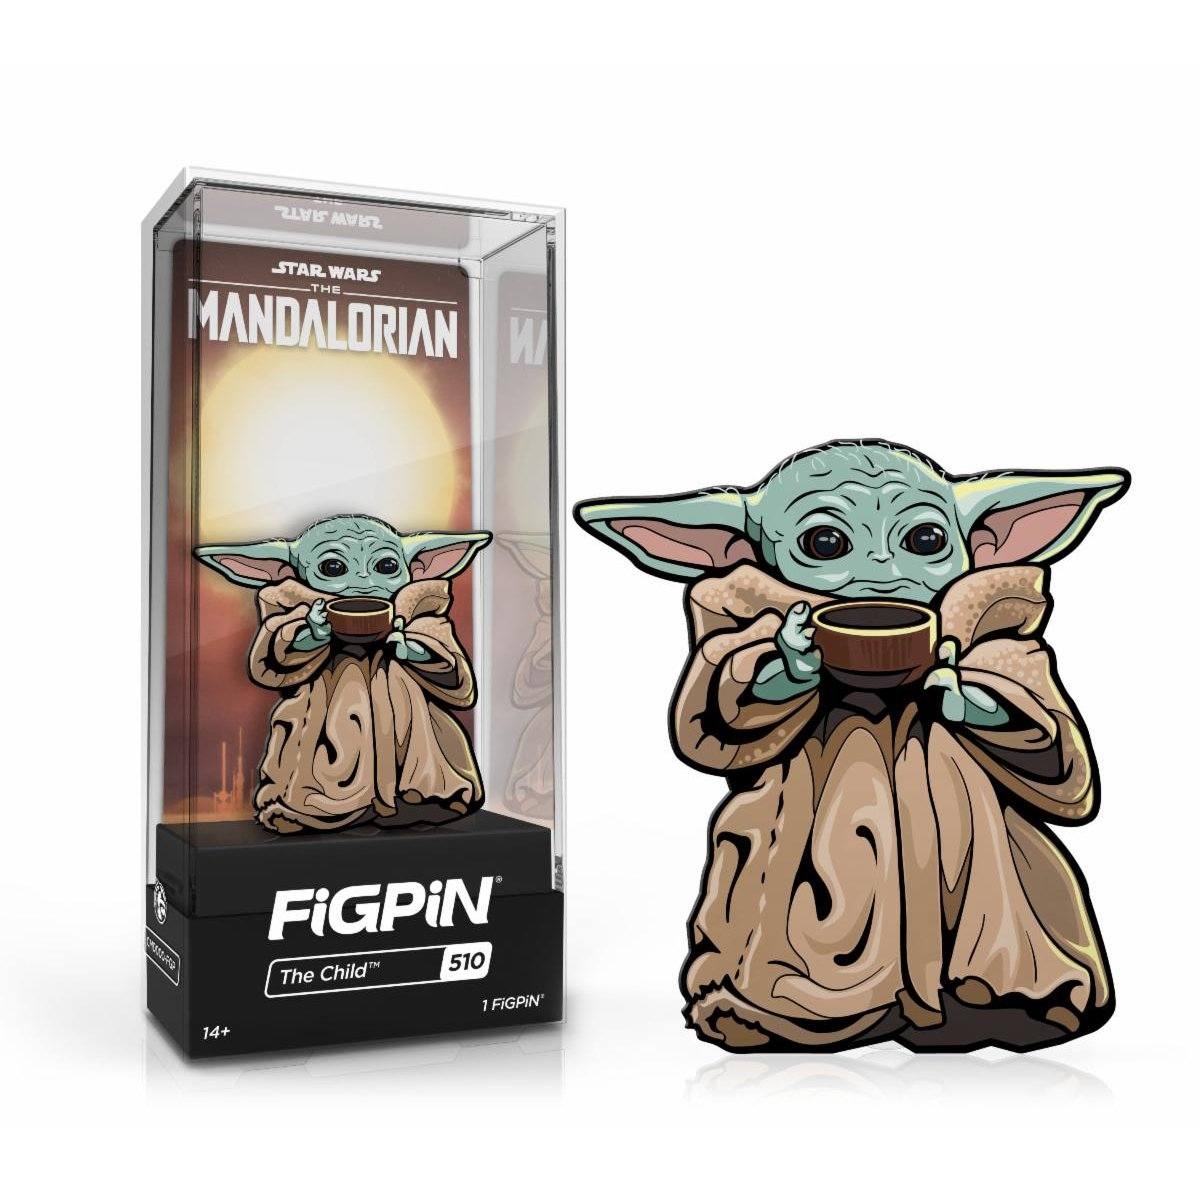 The Child (with soup) #510 Star Wars: The Mandalorian FiGPiN Classic [PRE-ORDER] FiGPiN Classic FiGPiN